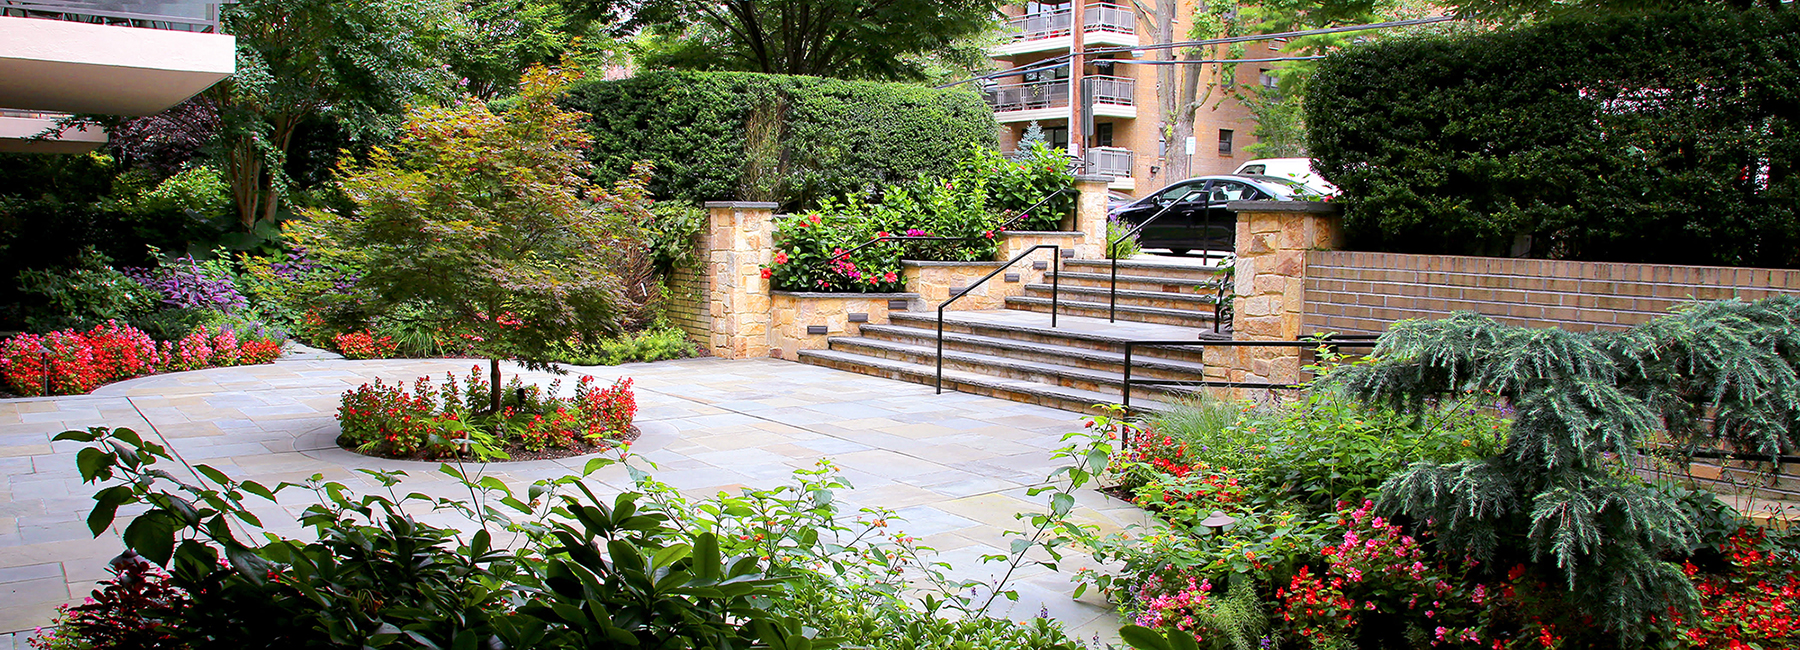 Bluestone patio with  entrance way stone steps and Japanese planting in Lloyd Neck